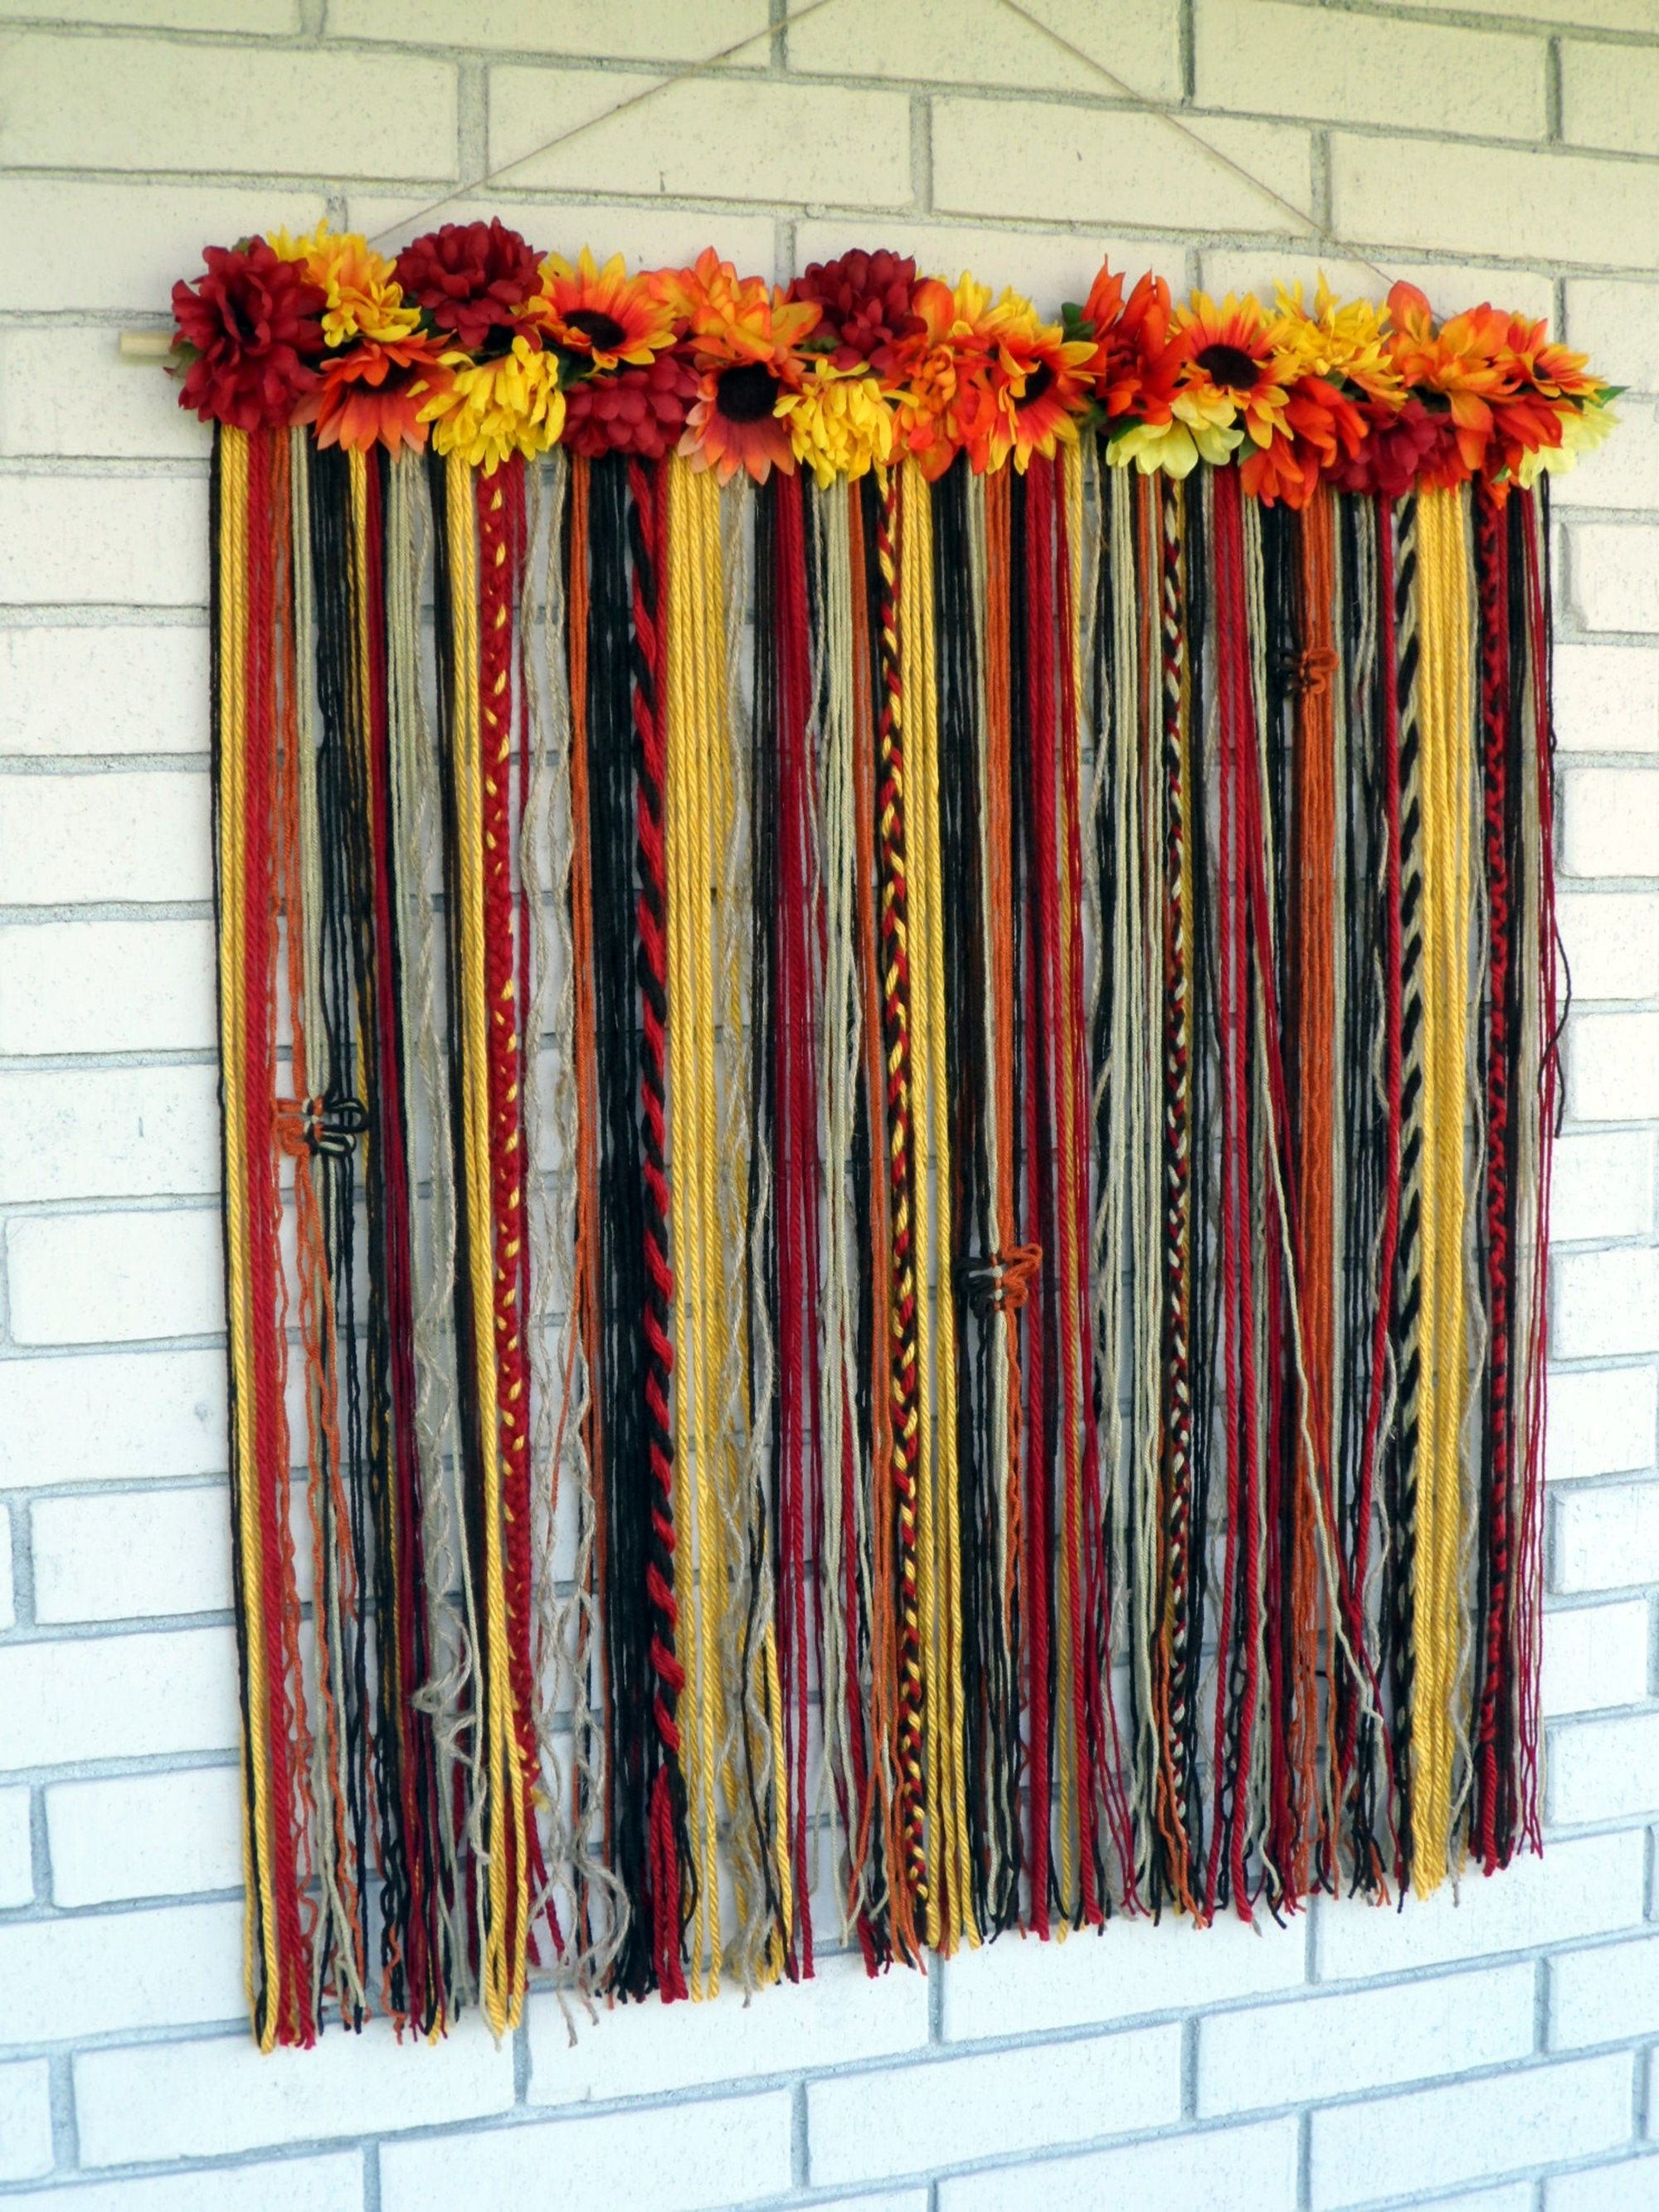 Wall Tapestry Yarn Wall Hanging Macrame Wall Hanging Fall Wall